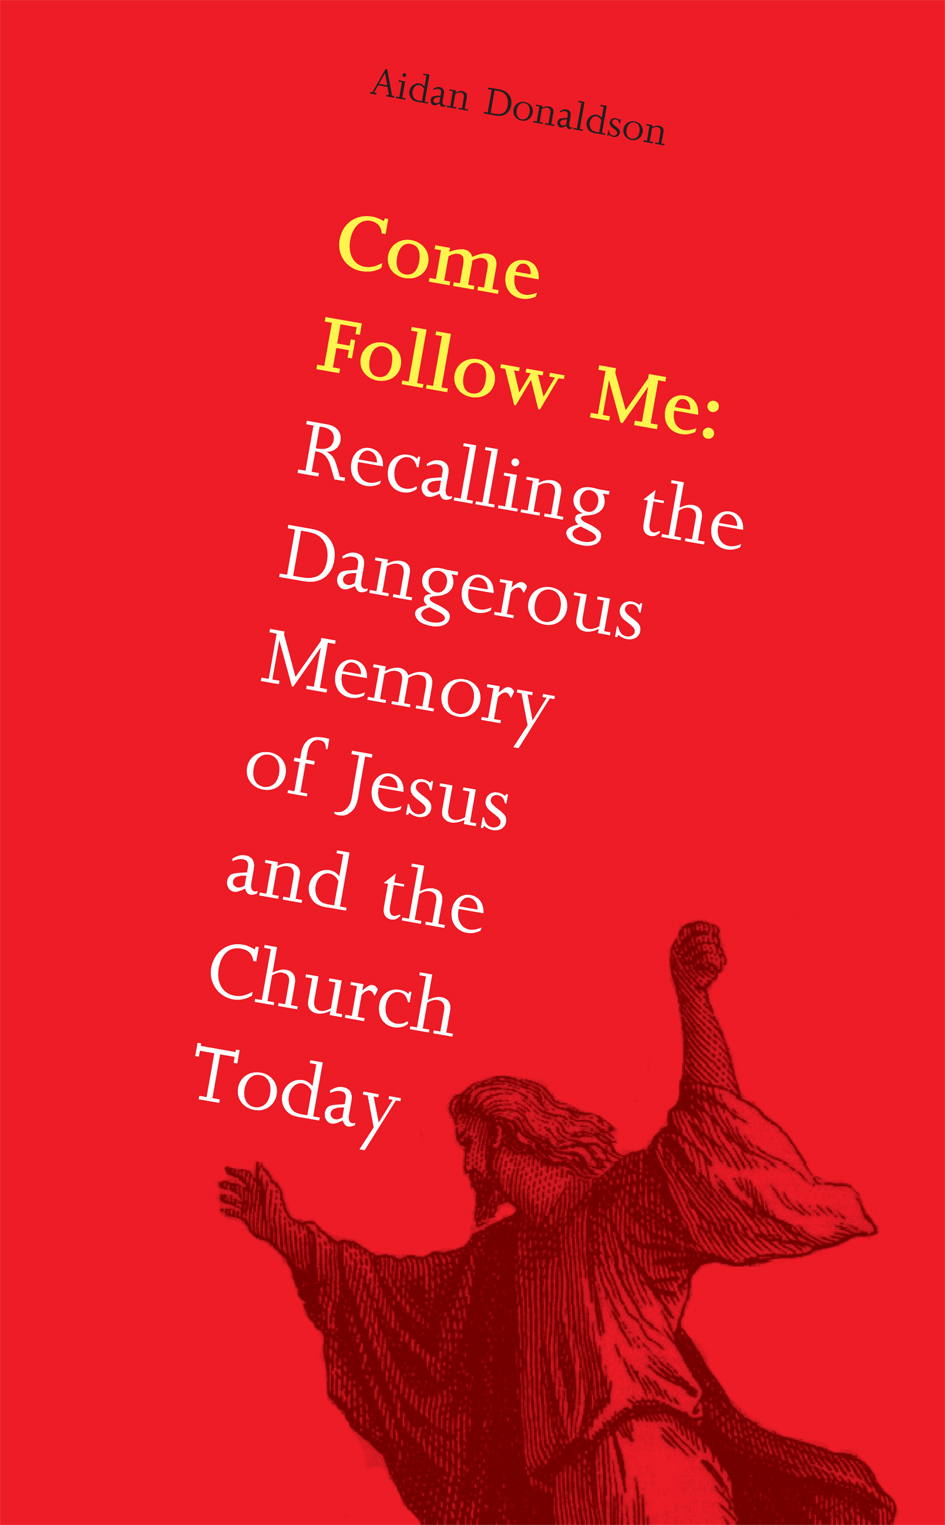 Come Follow Me: Recalling the Dangerous Memory of Jesus and the Church Today